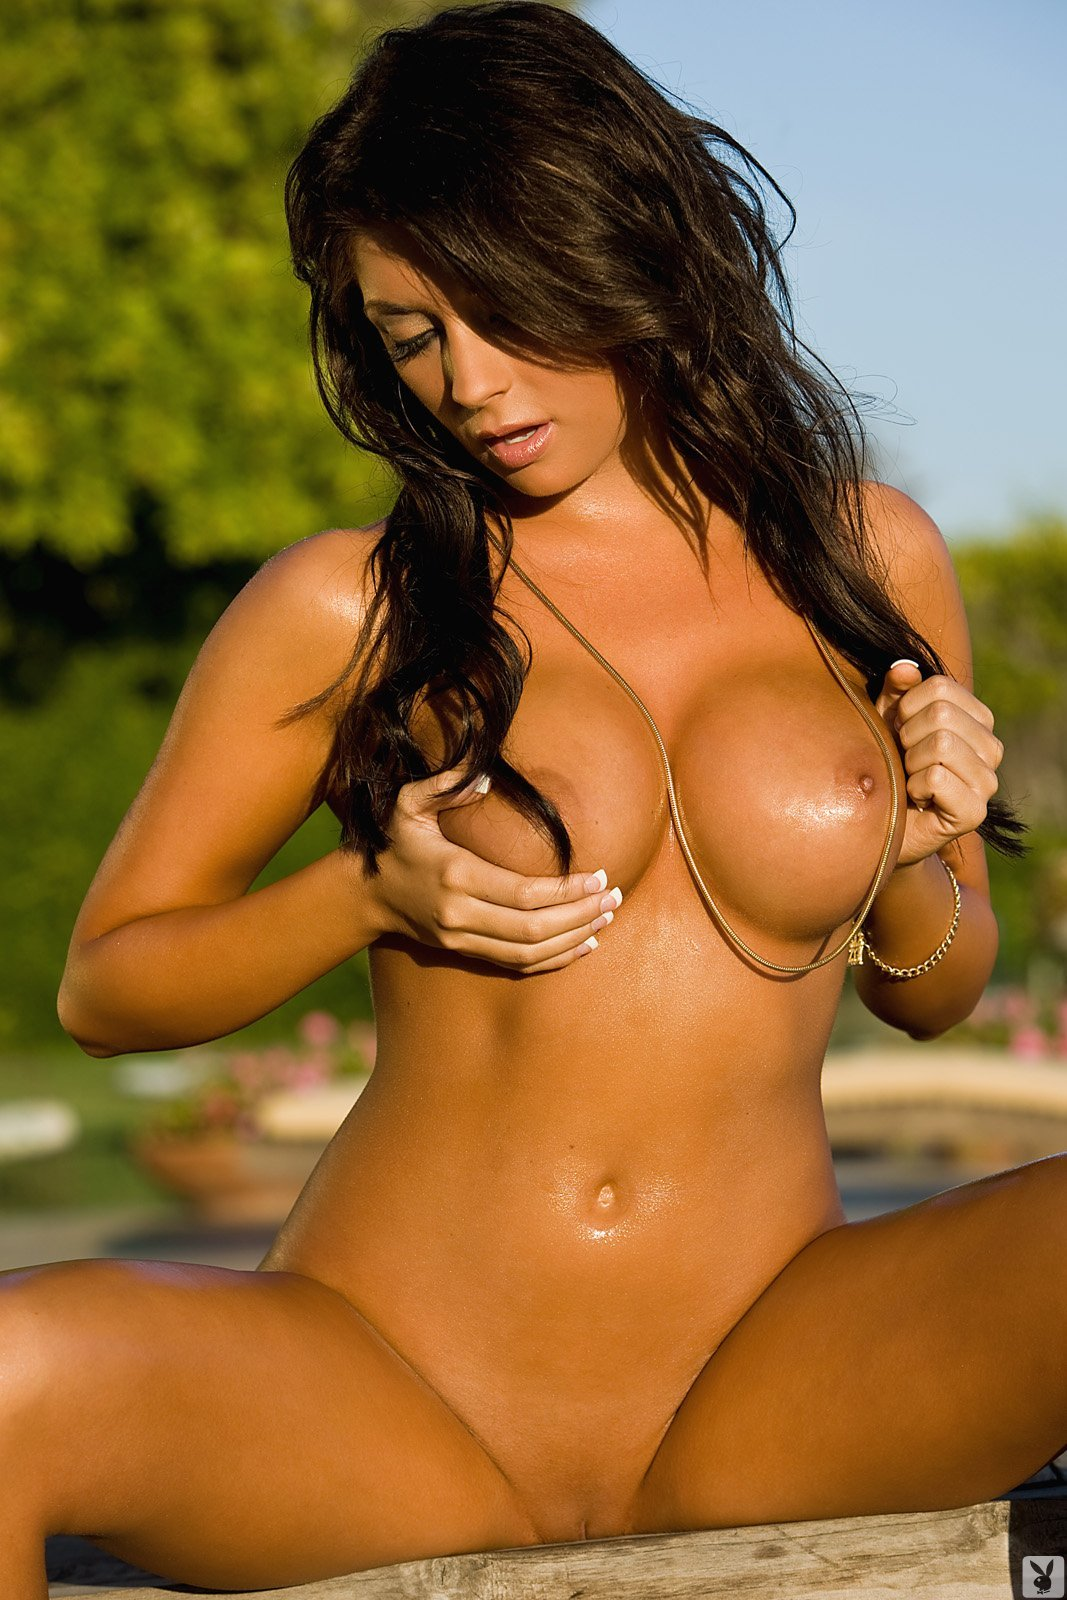 playboycollection:  LOGANN BROOKE http://e-gazou-c.tumblr.com/